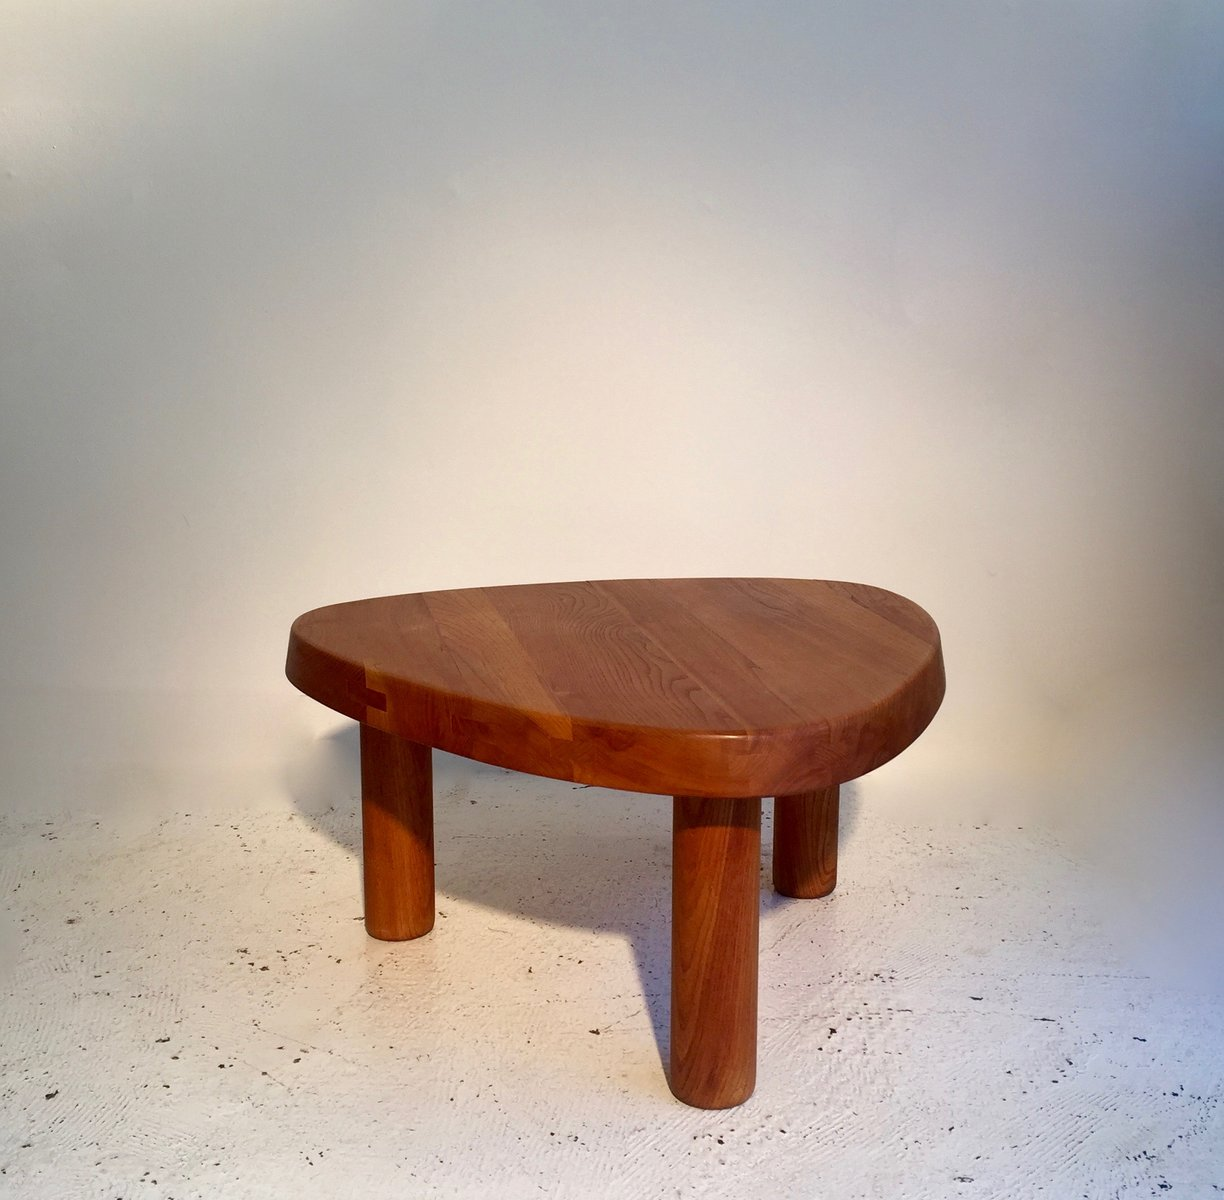 vintage elm coffee table by pierre chapo for sale at pamono. Black Bedroom Furniture Sets. Home Design Ideas